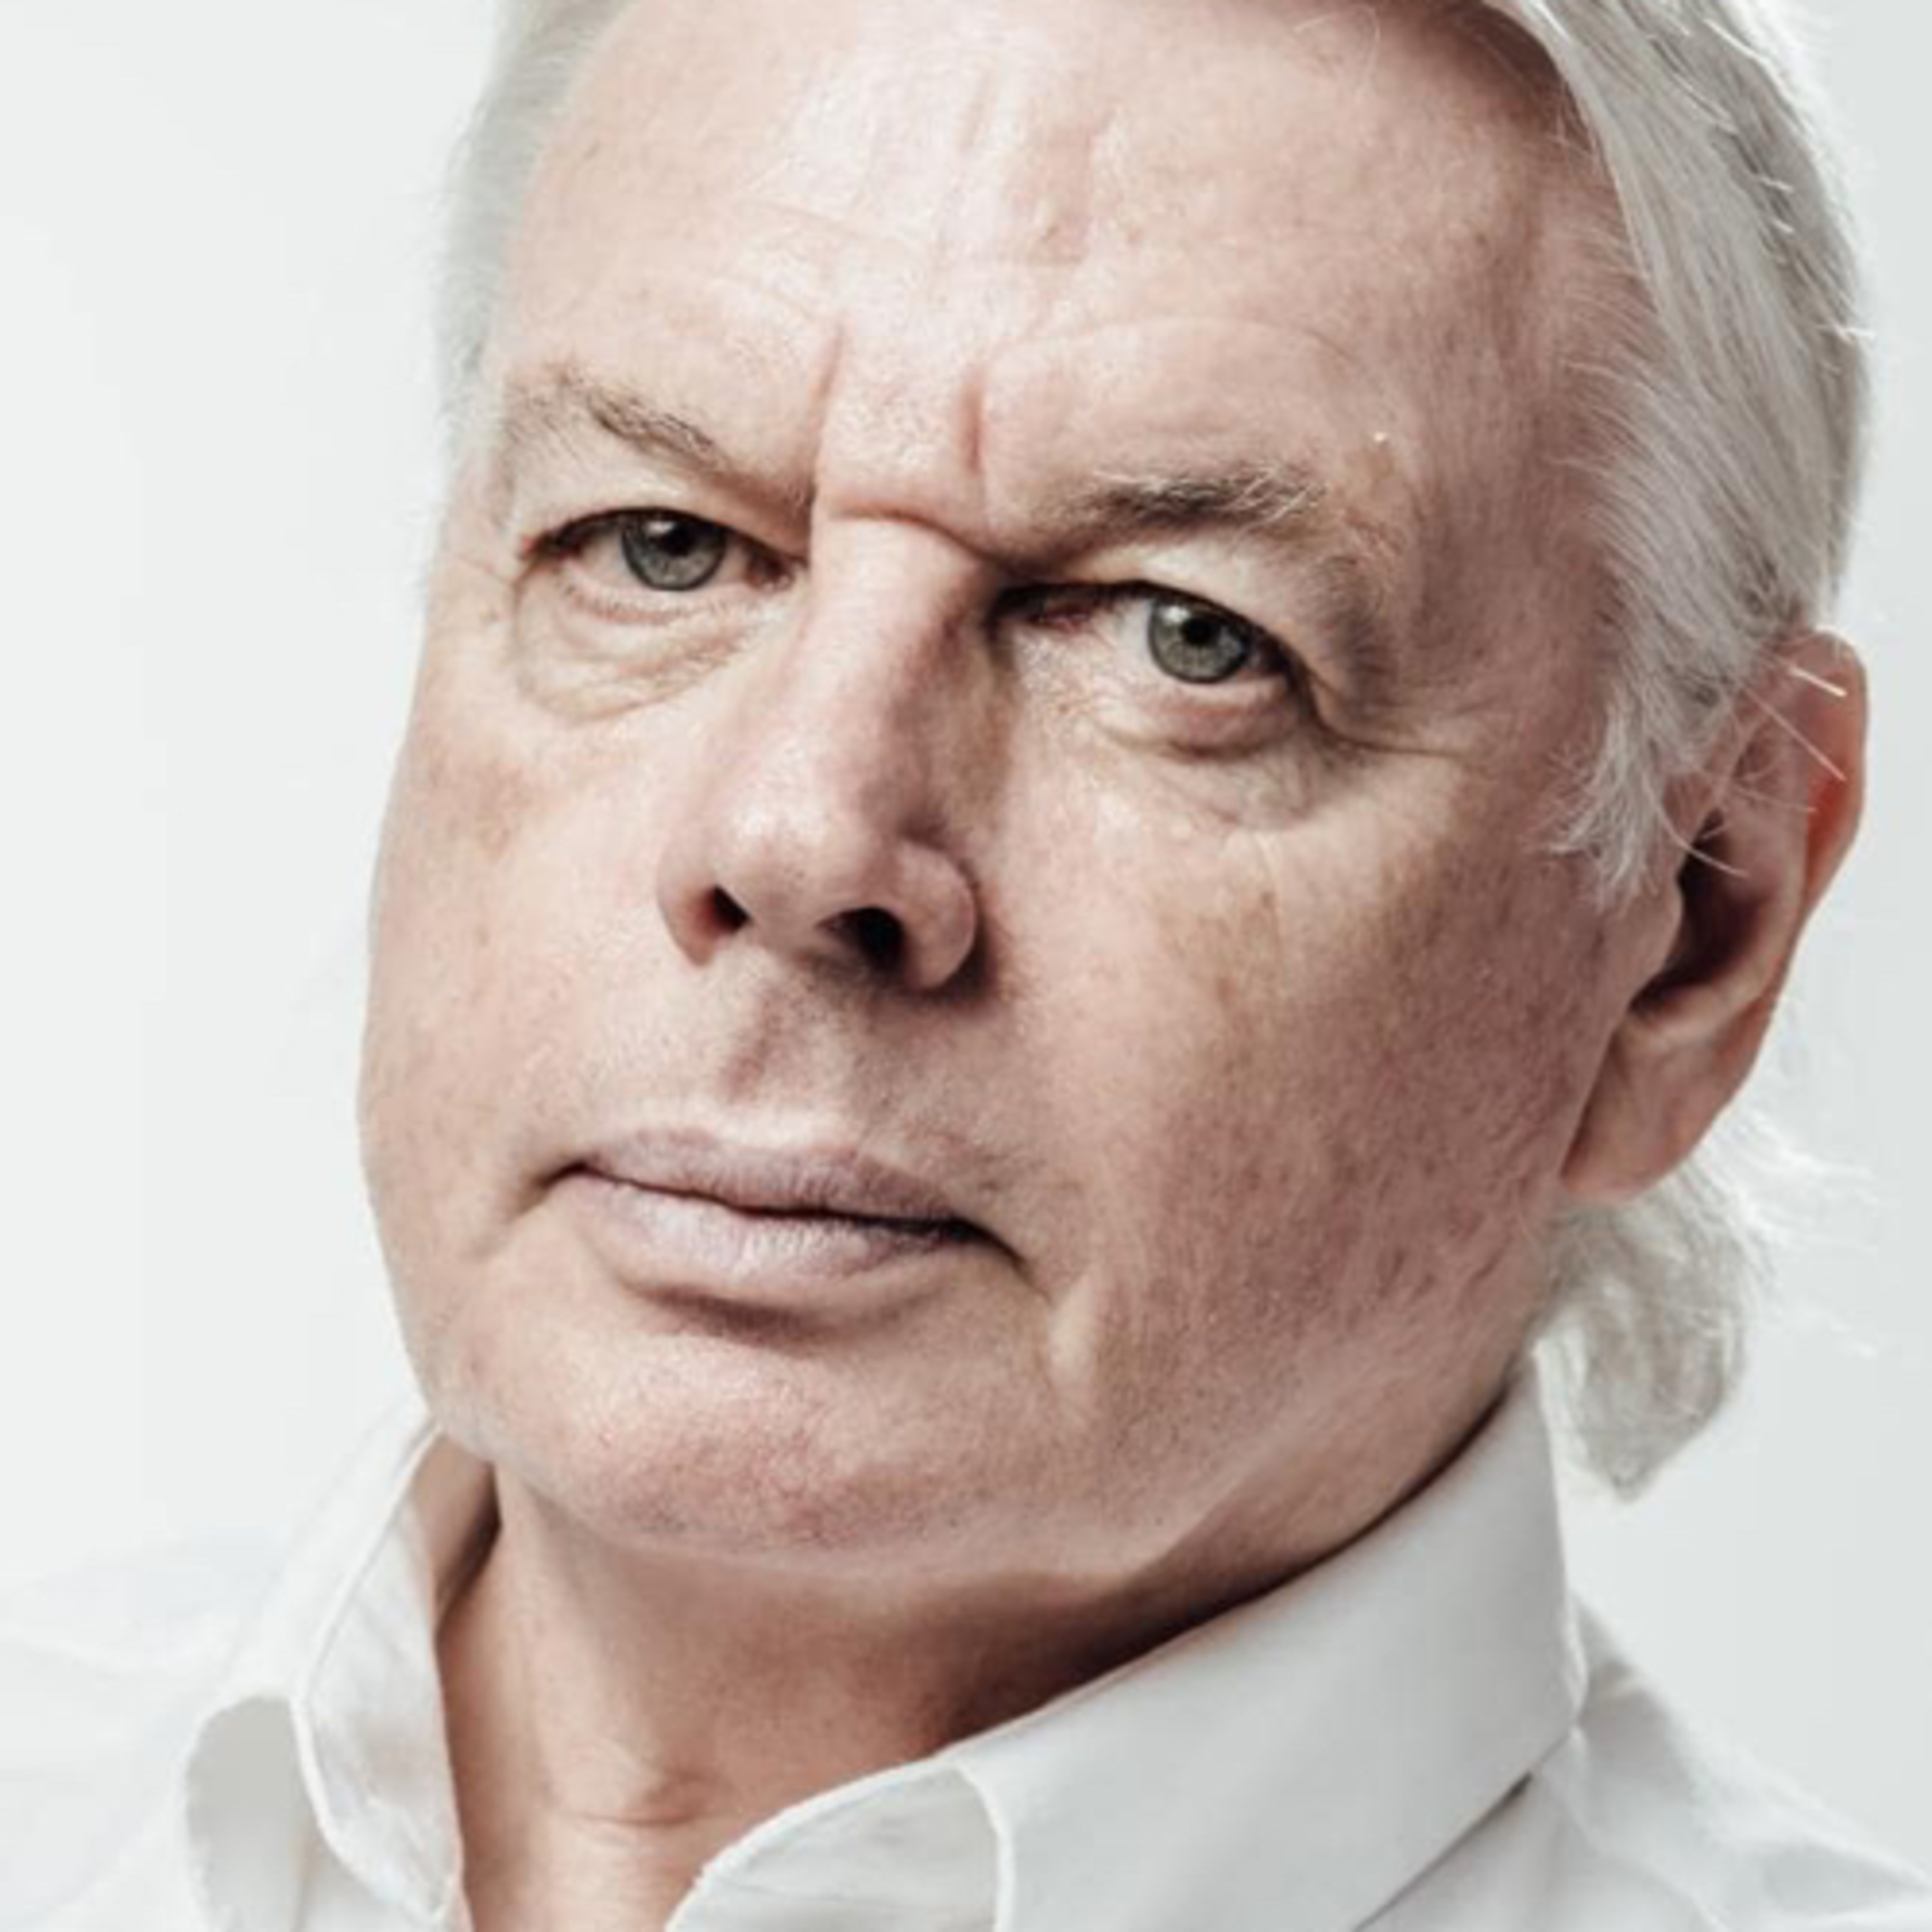 David Icke dissects the Spider Web.